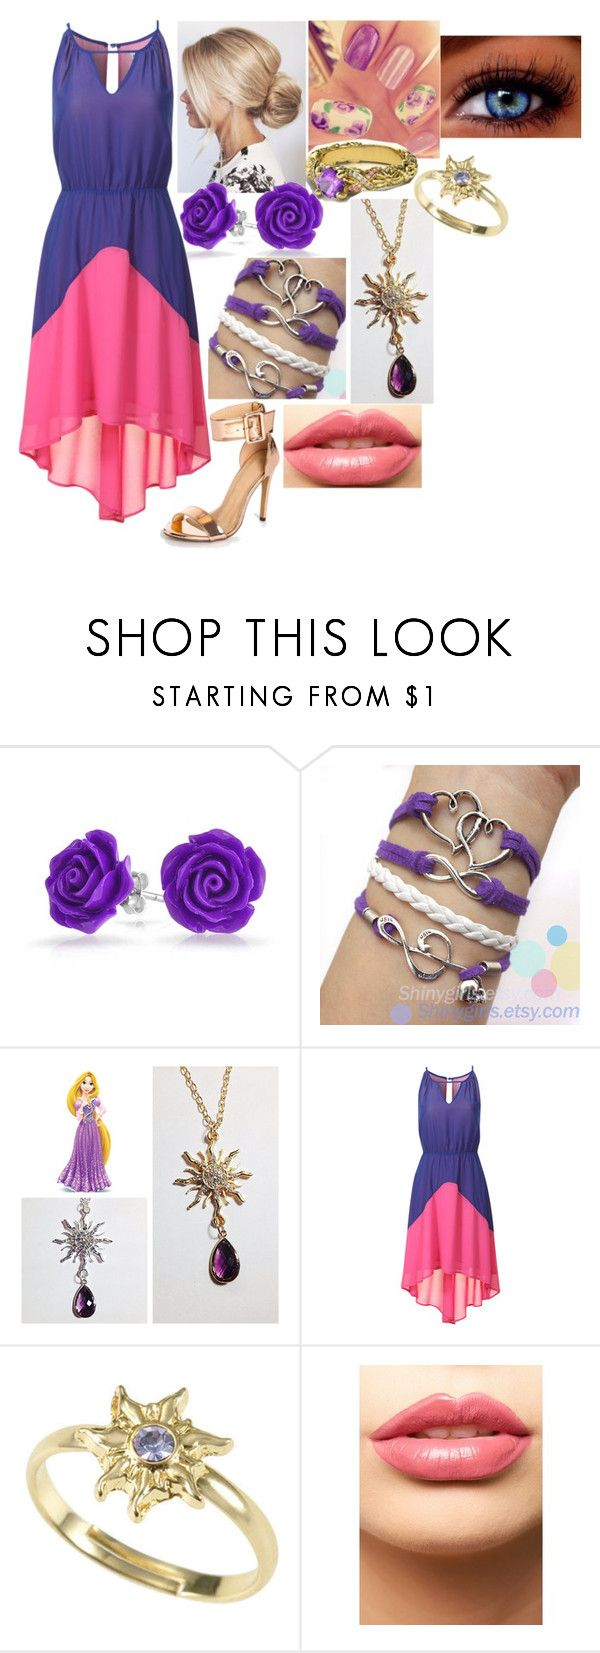 """Disney's Descendants: Rapunzel and Eugene's Daughter"" by sophie-quake-jones ❤ liked on Polyvore featuring Bling Jewelry, Disney, Alice & You and LASplash"